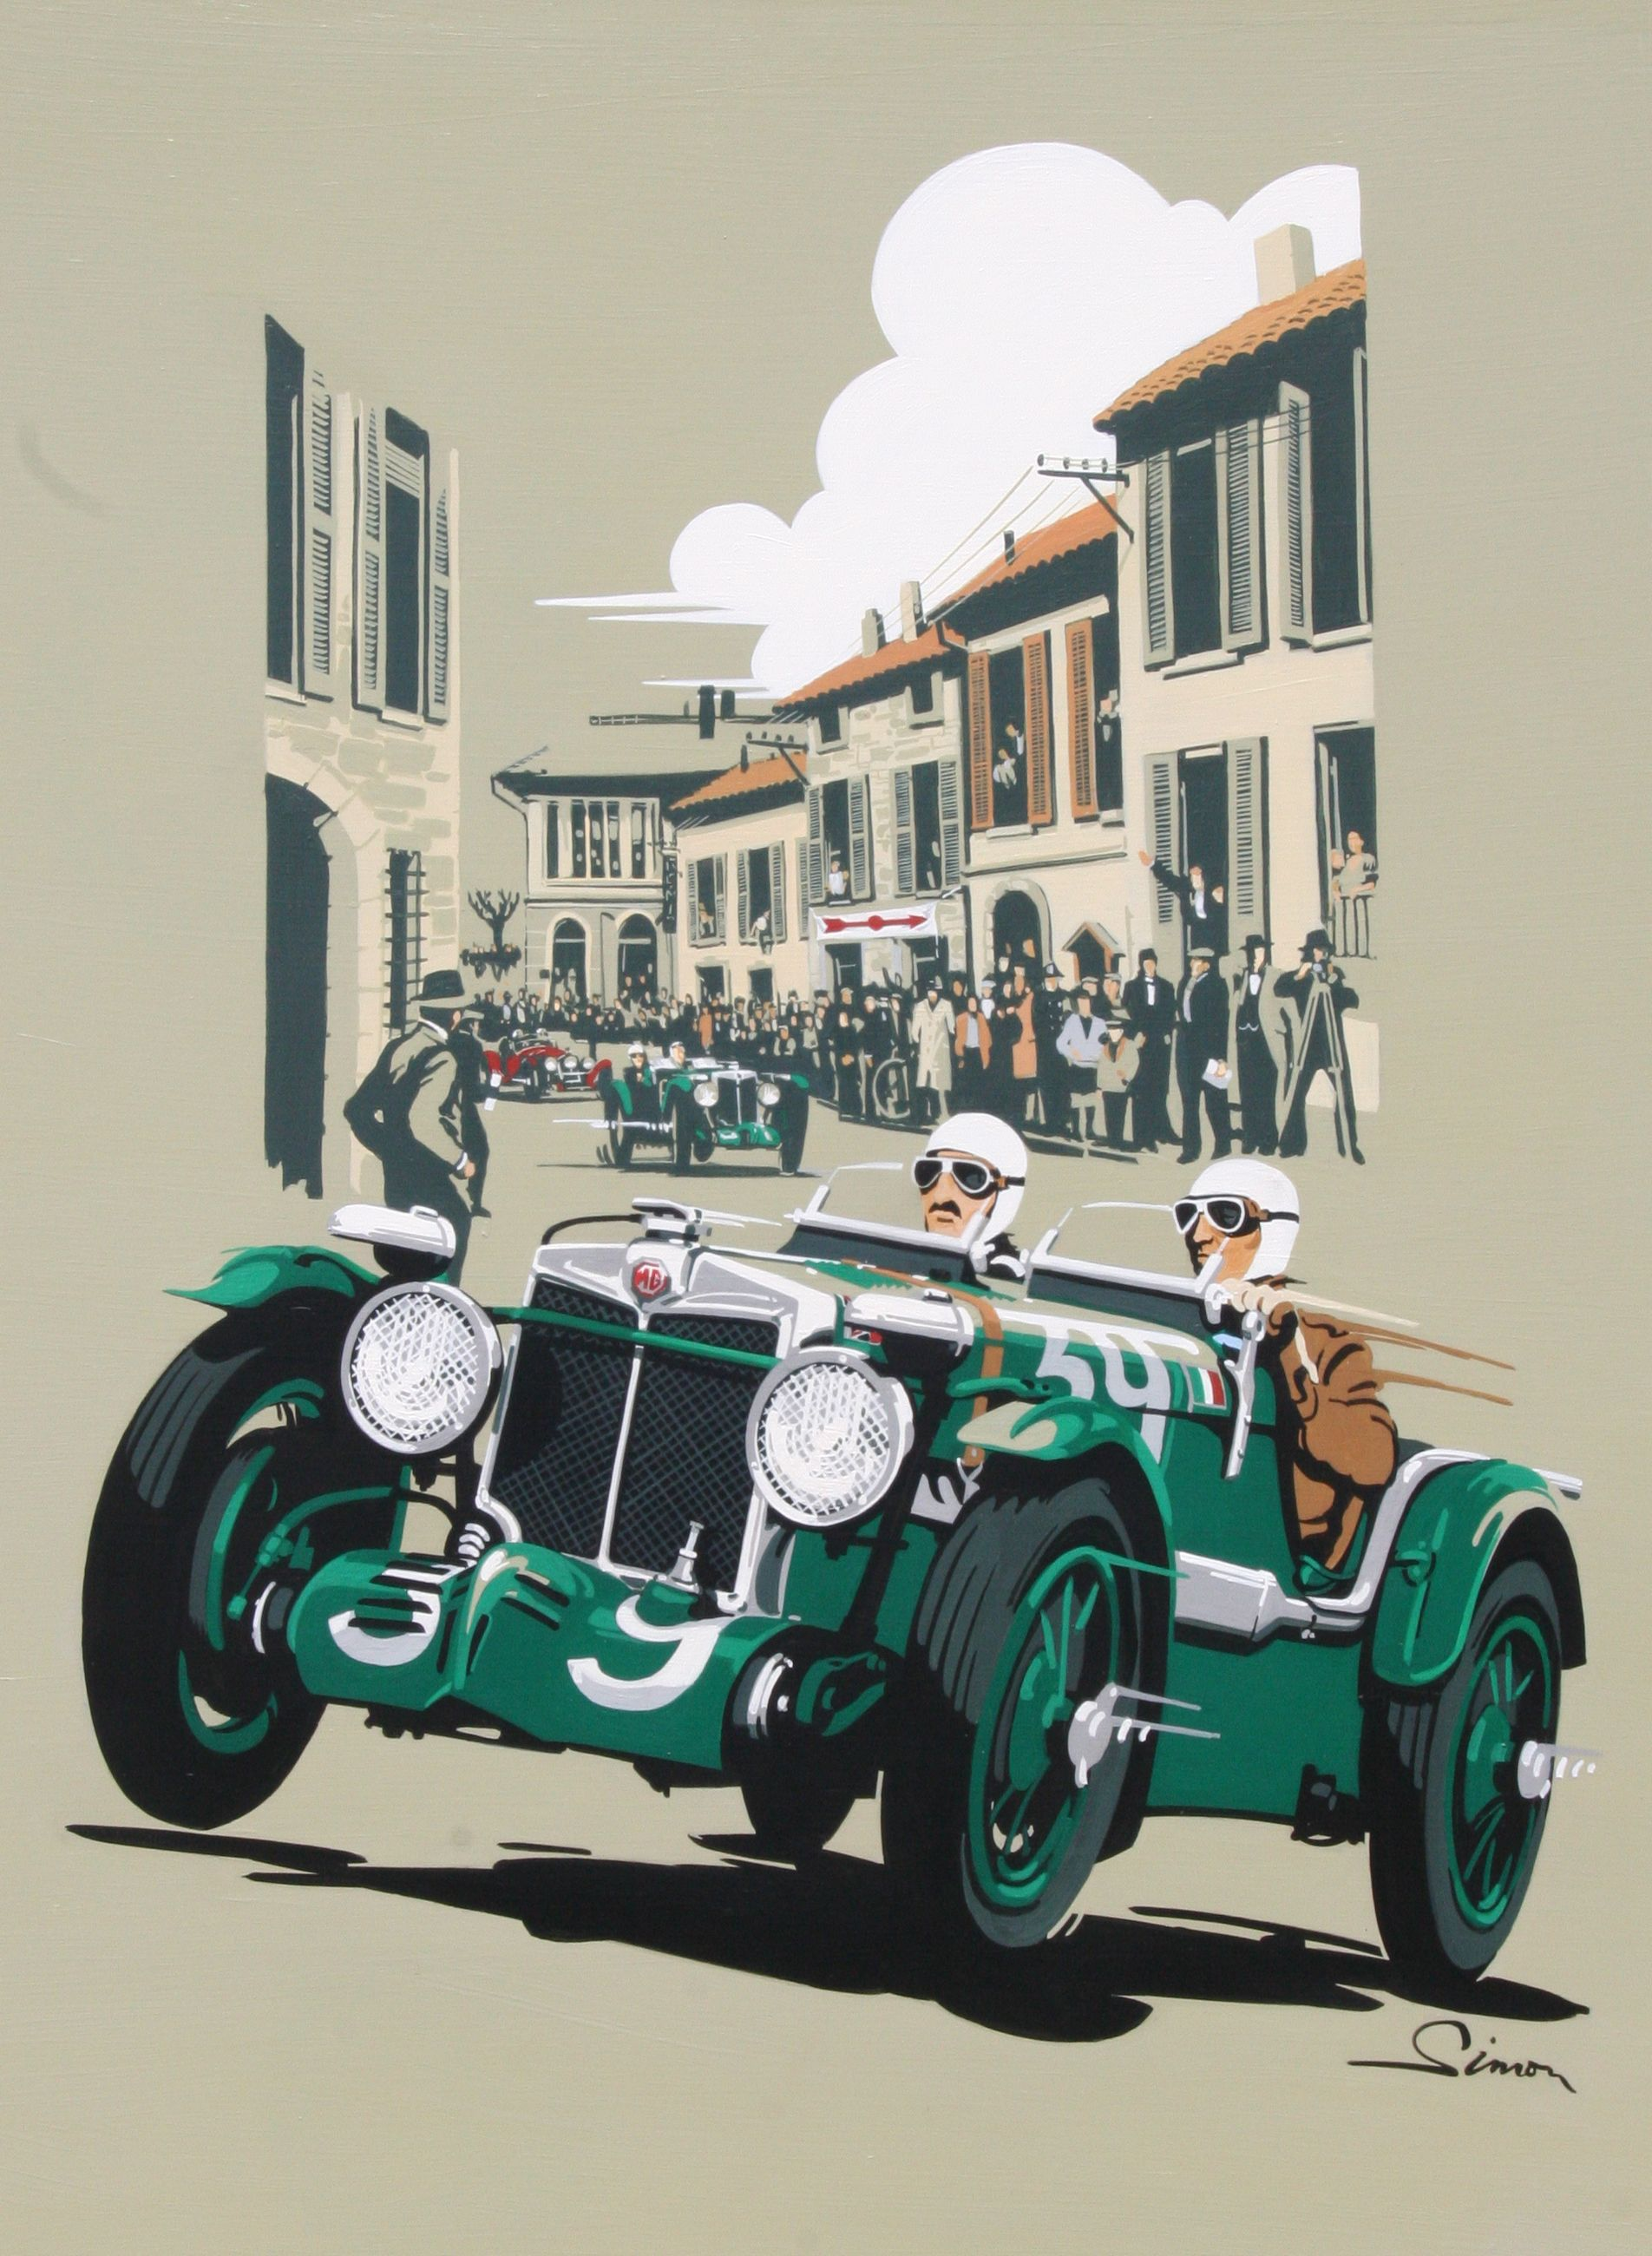 Design poster k3 - Mille Miglia K3 Mg Vintage Style Poster By Dennis Simon This Poster Is